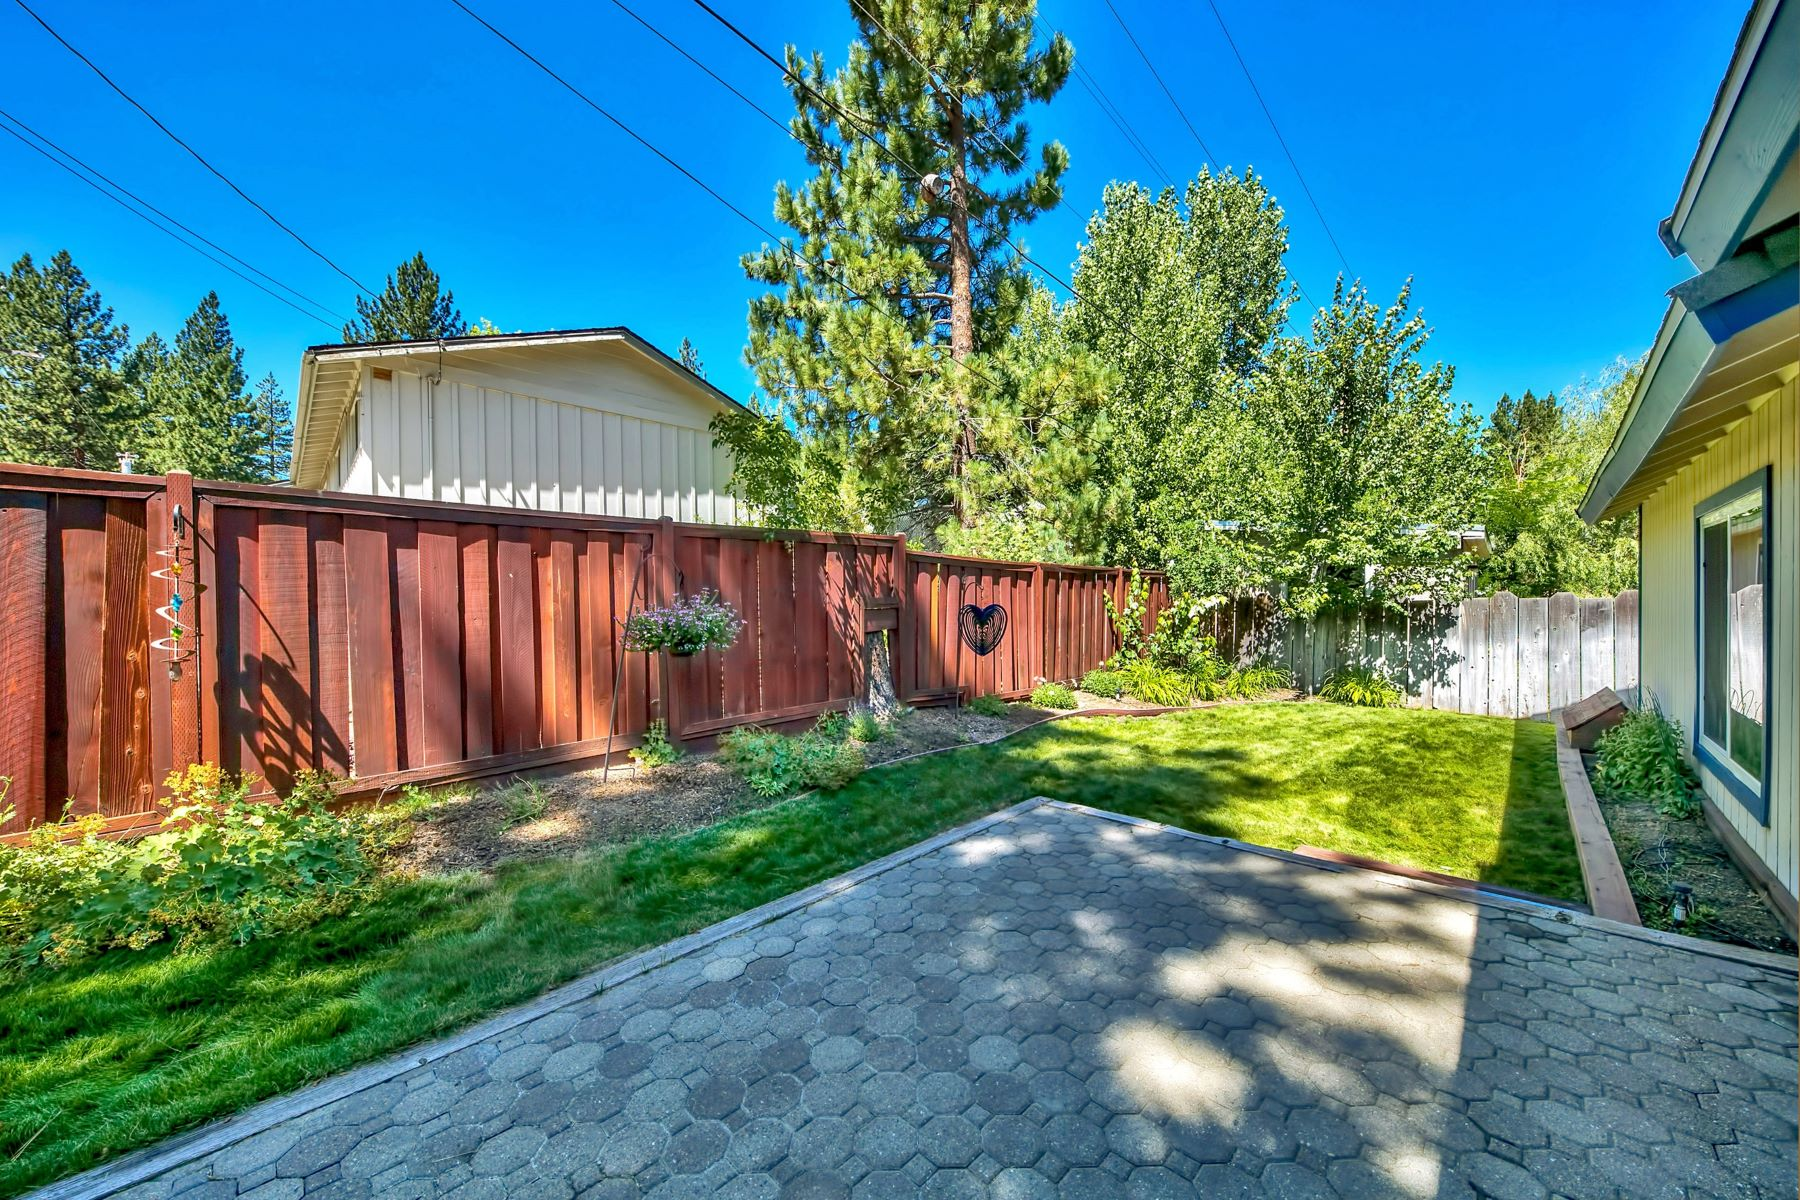 Additional photo for property listing at 1234 Jobs Peak Dr,South Lake Tahoe, CA  96150 1234 Jobs Peak Dr 南太浩湖, 加利福尼亚州 96150 美国